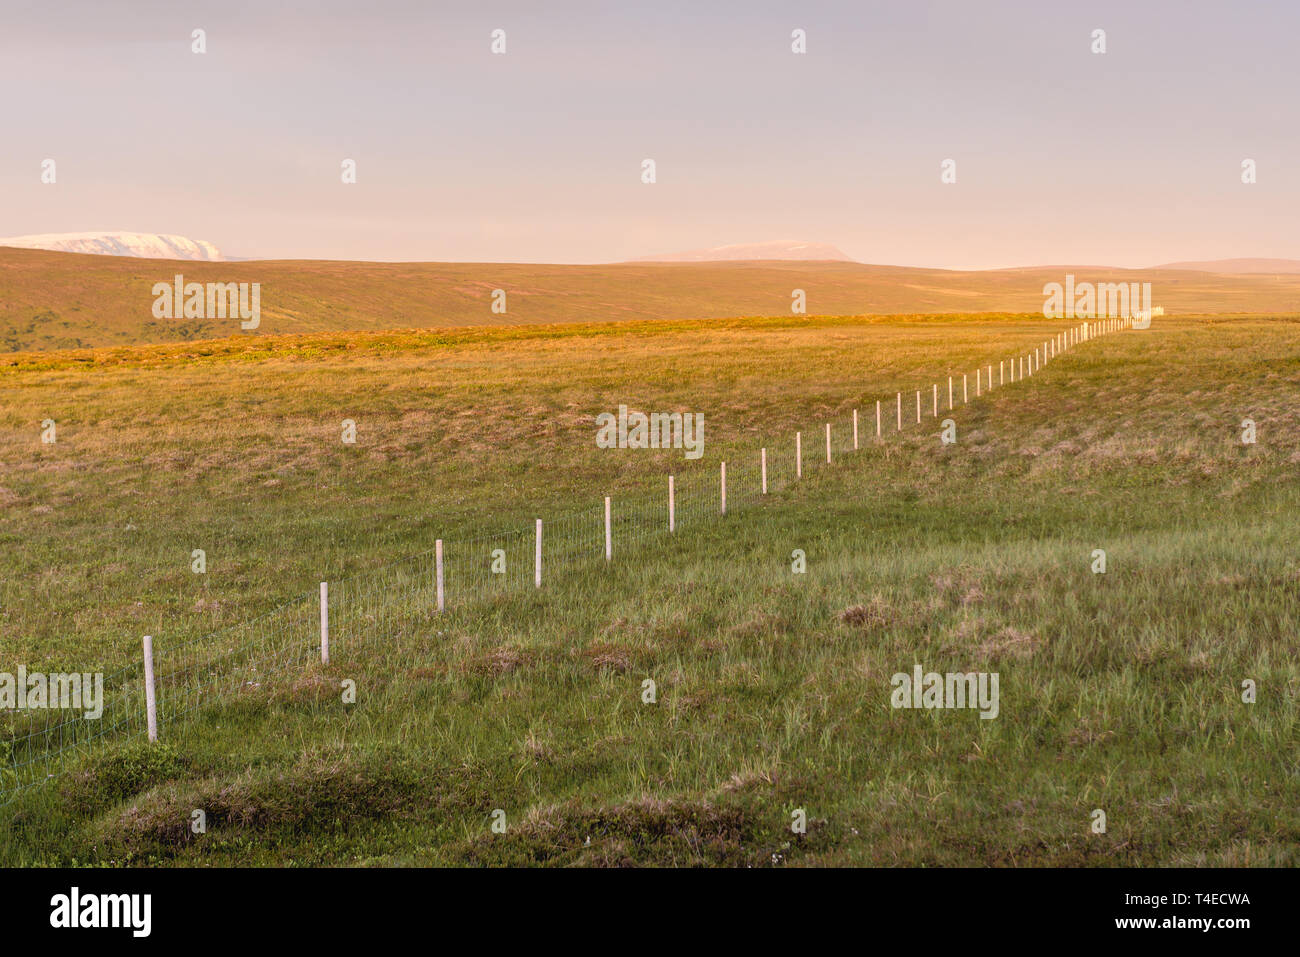 Aerial view on grazing land near Laugar town in Iceland - Stock Image